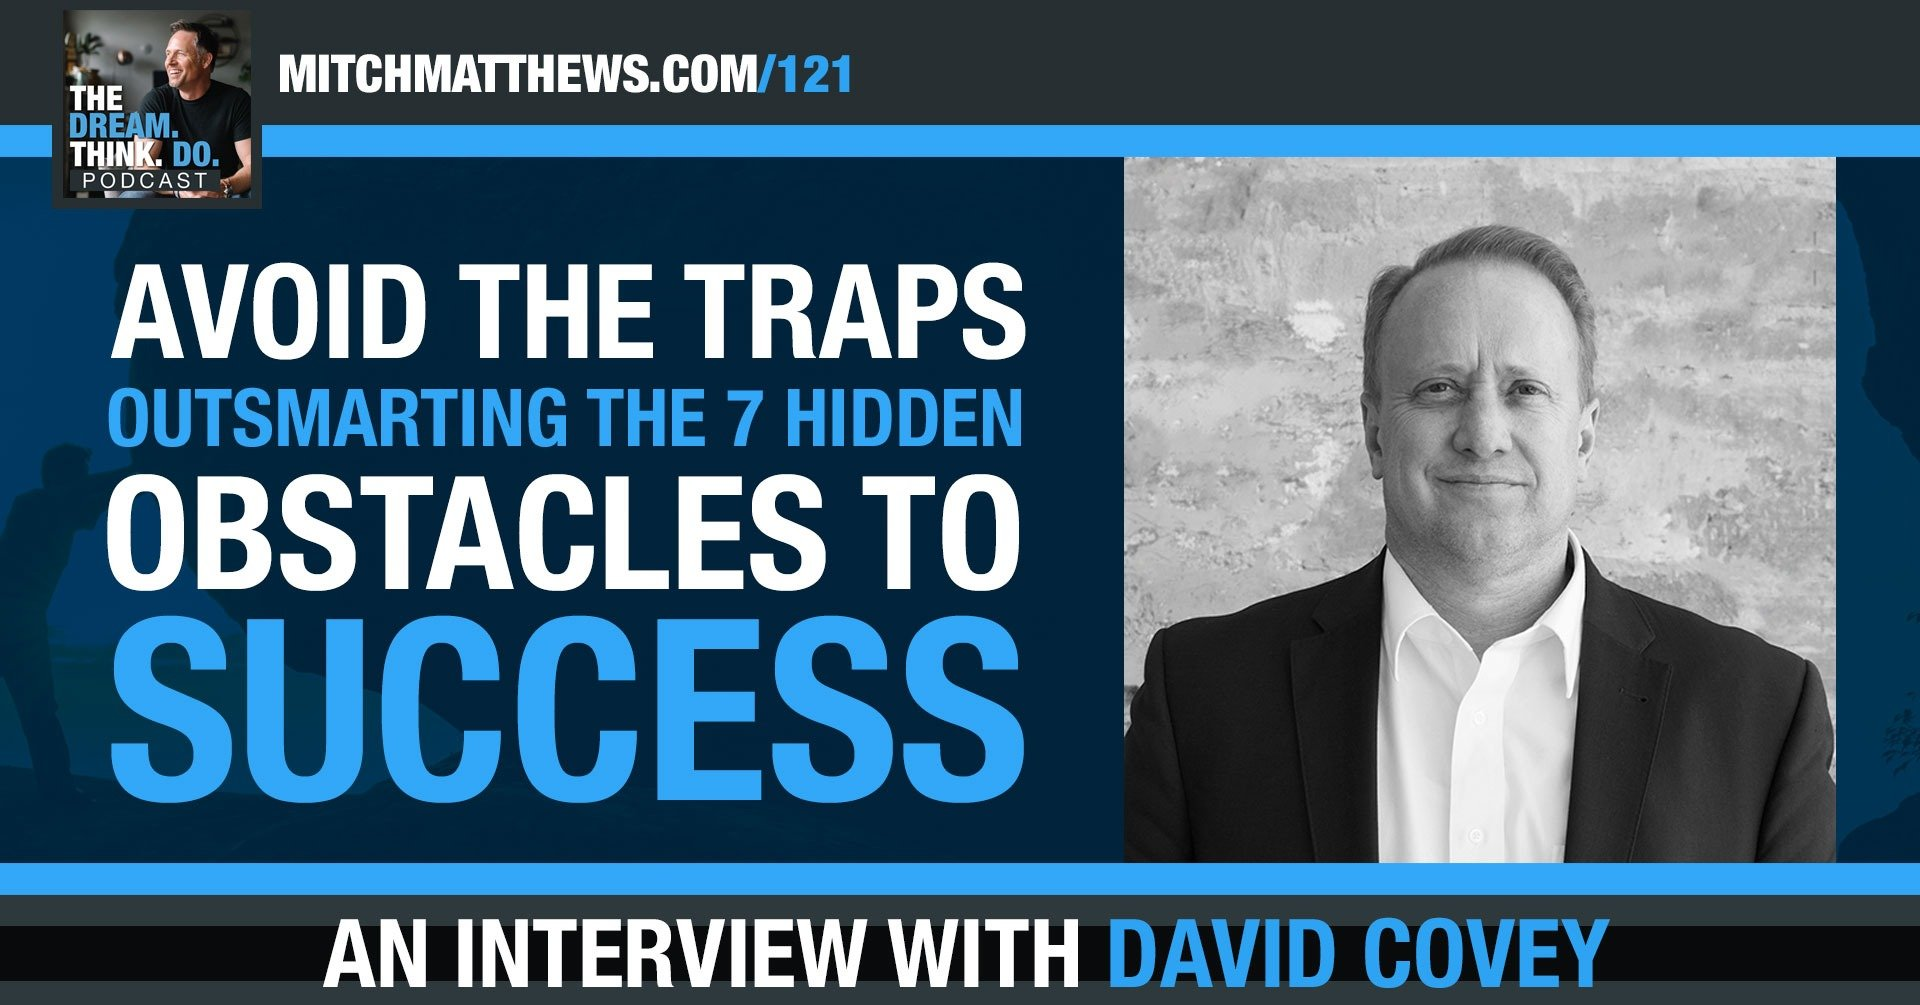 Avoid the Traps - Outsmarting the 7 hidden obstacles to success with David Covey